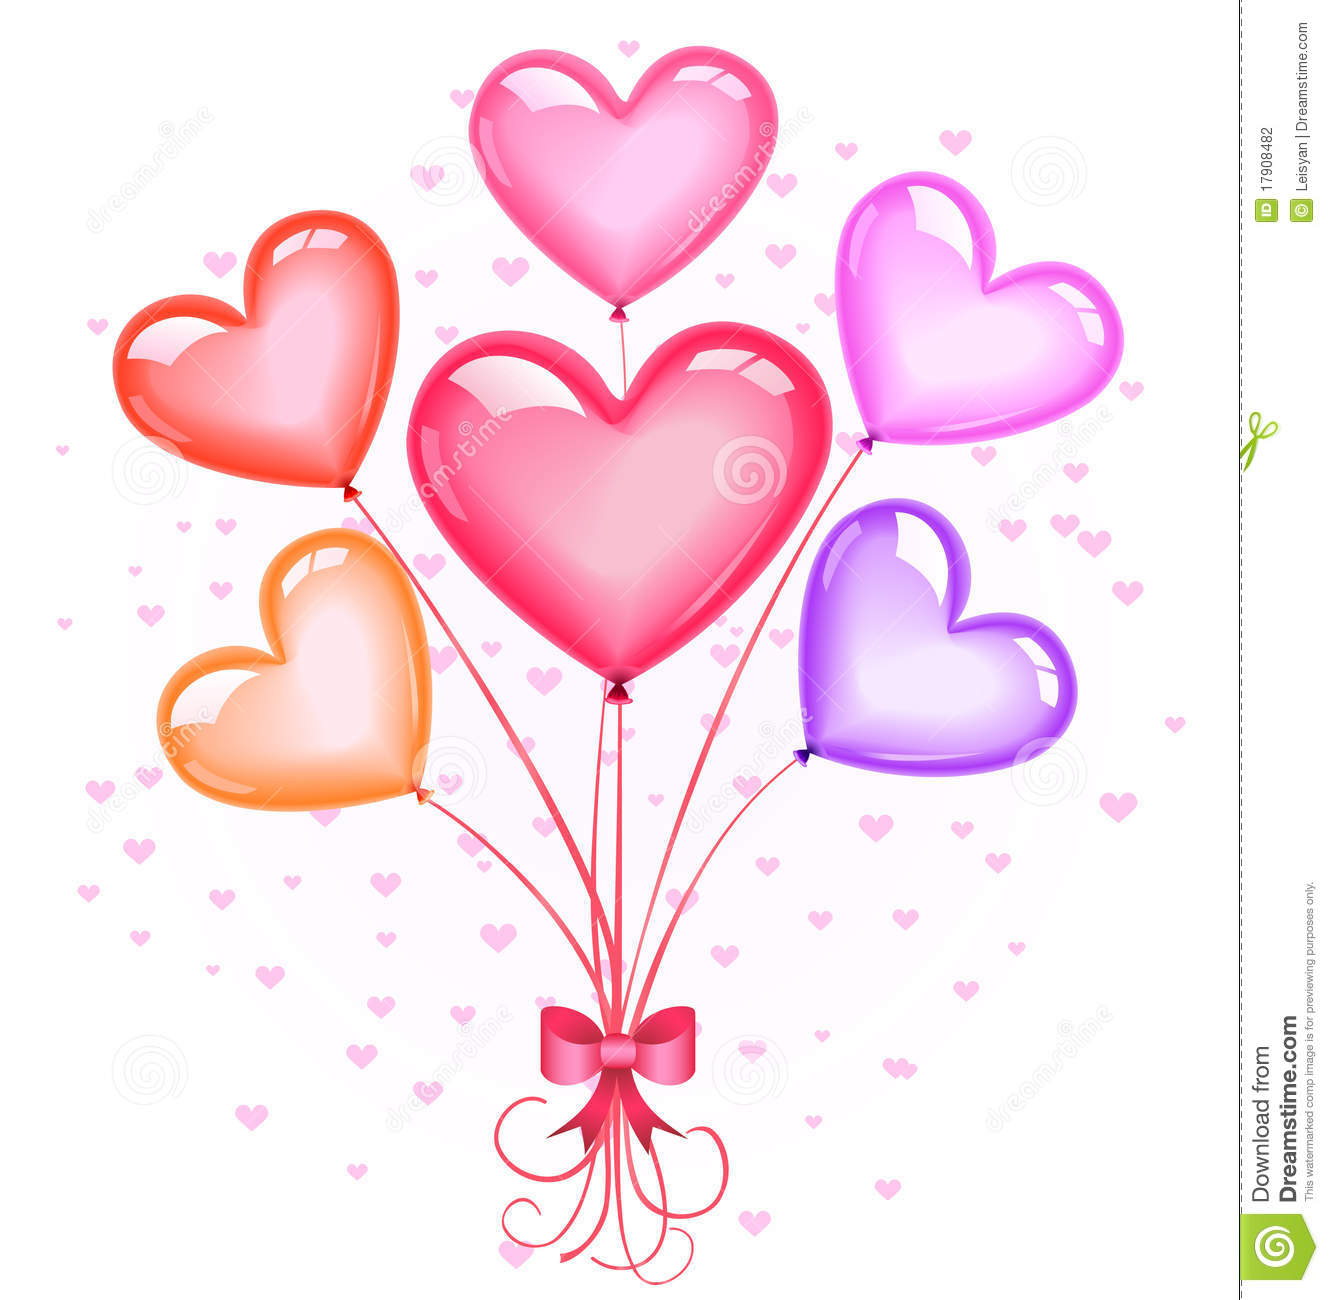 Heart-shaped Balloons Bouquet Stock Photography - Image: 17908482